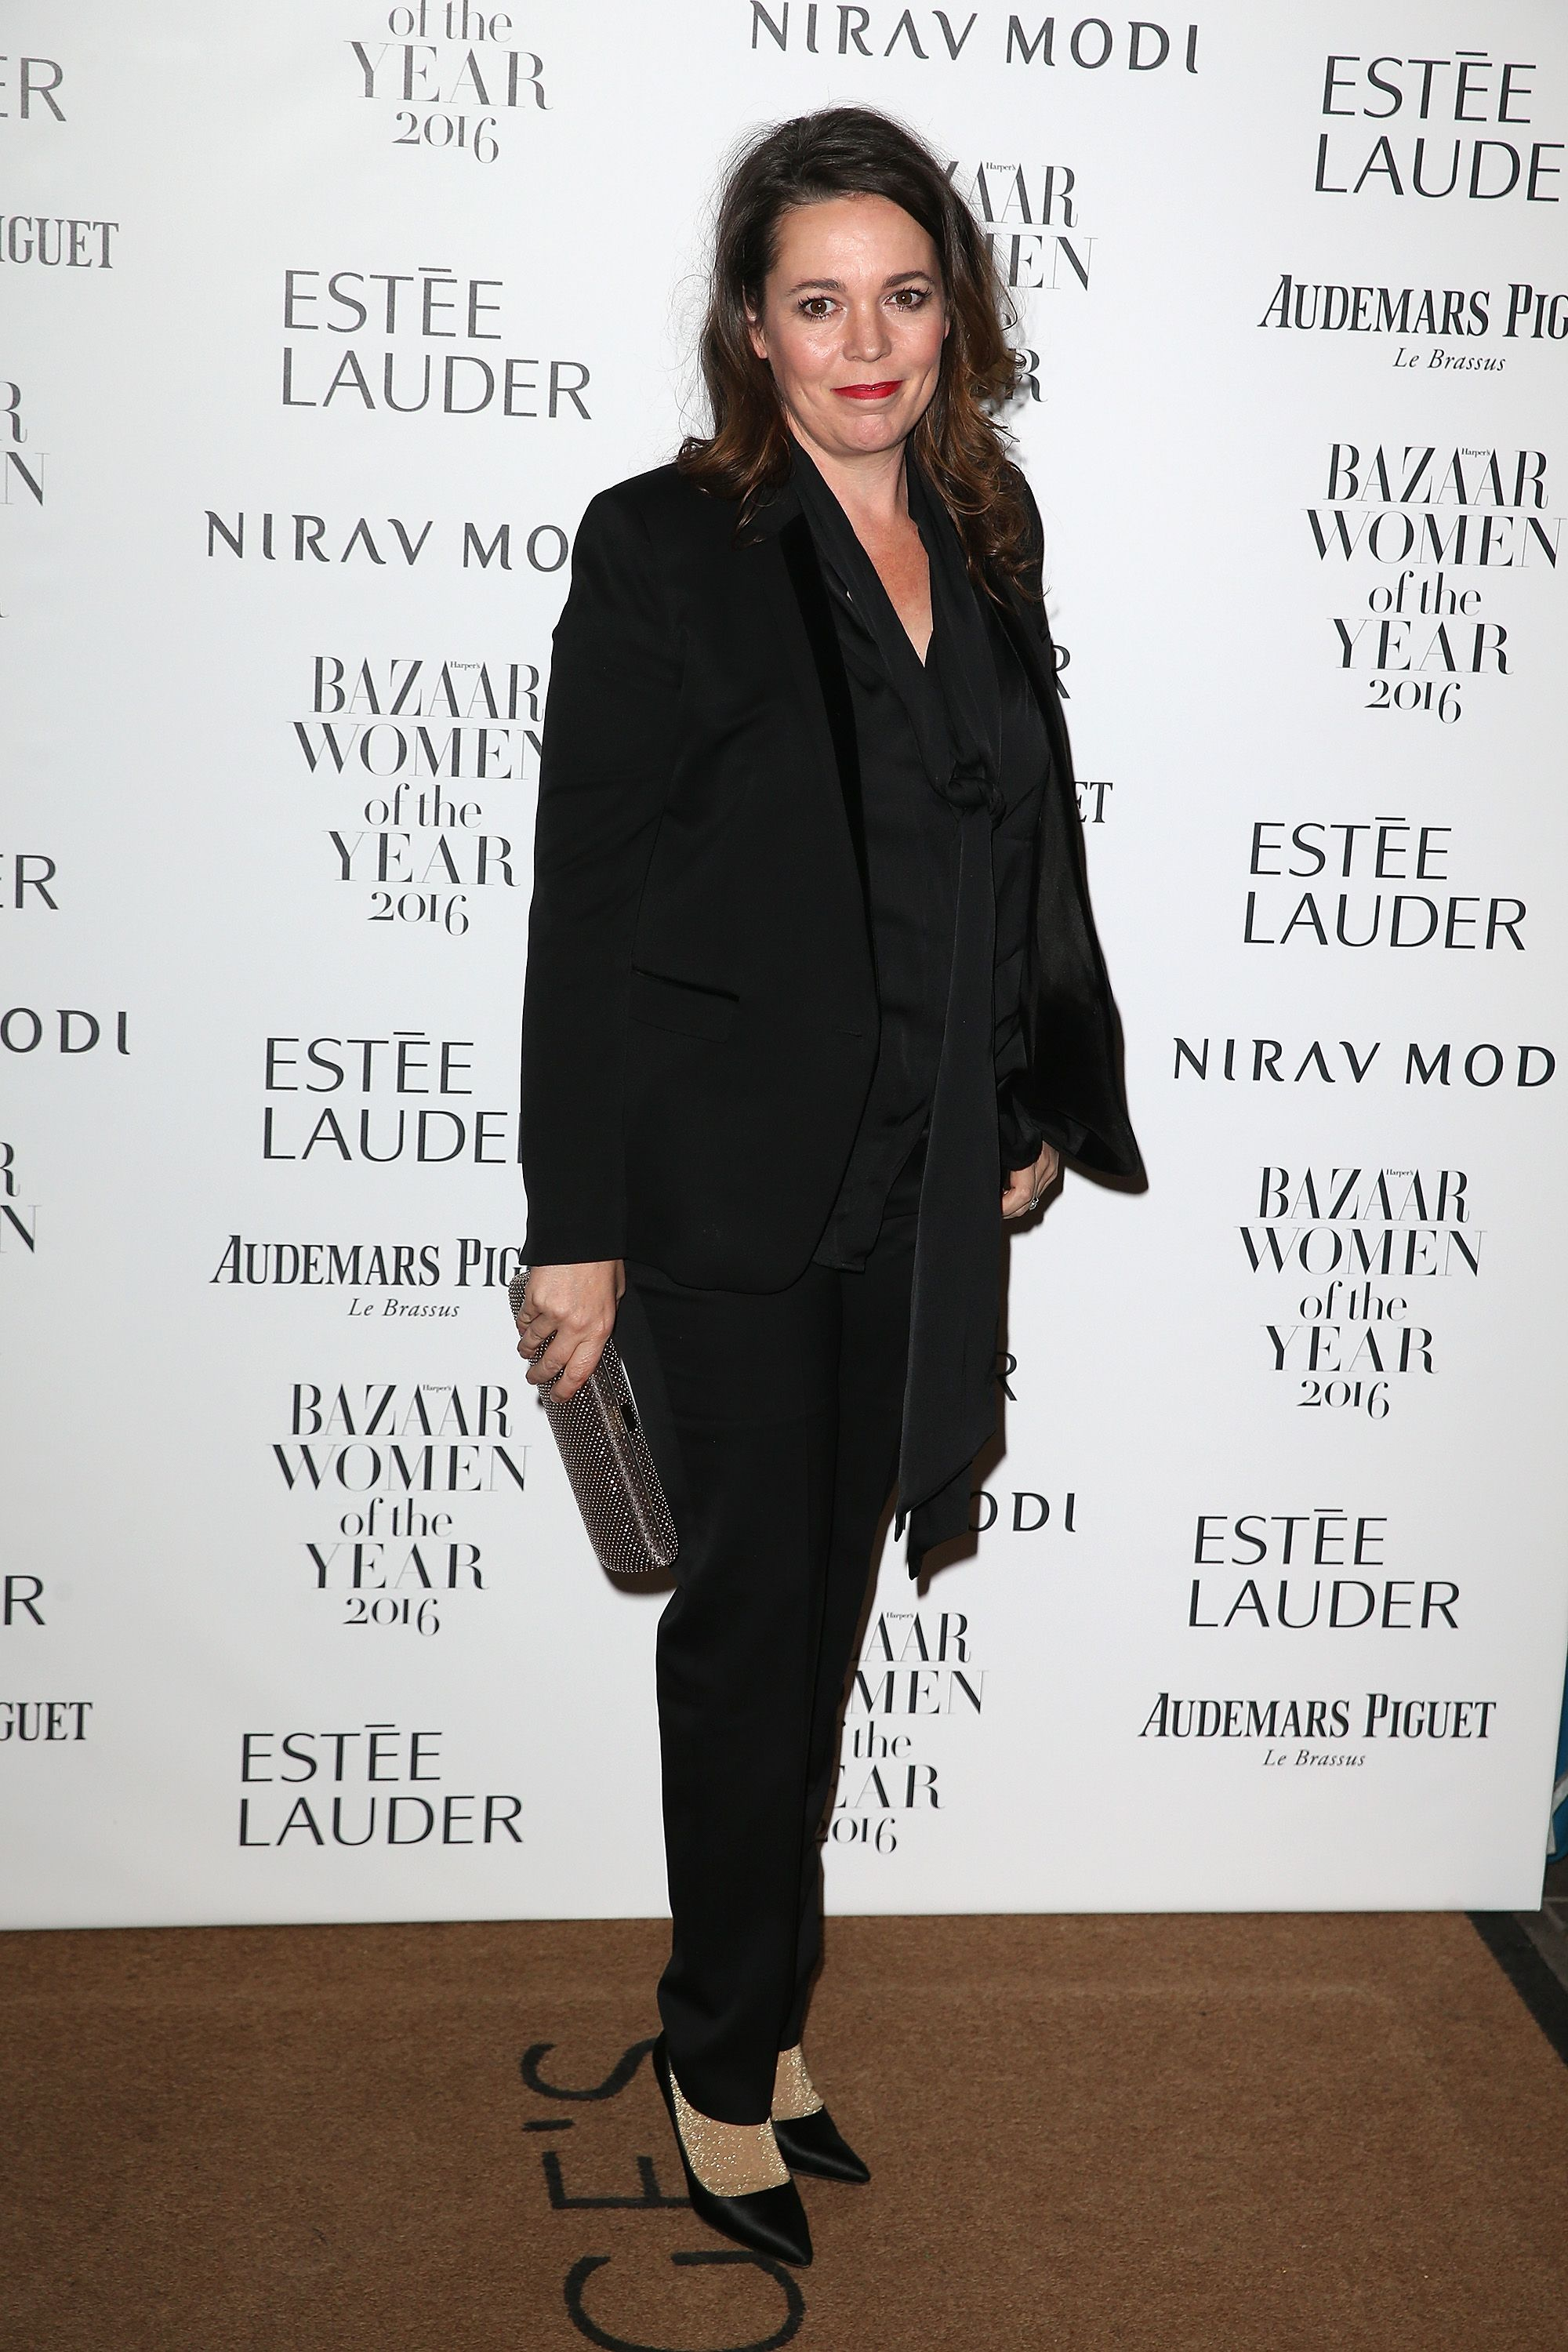 Colman is the queen of adding playful touches to sophisticated suits. At the Harper's Bazaar Women of the Year Awards in 2016, the actress paired gold socks with her black tuxedo suit to give the look a bit of whimsy.